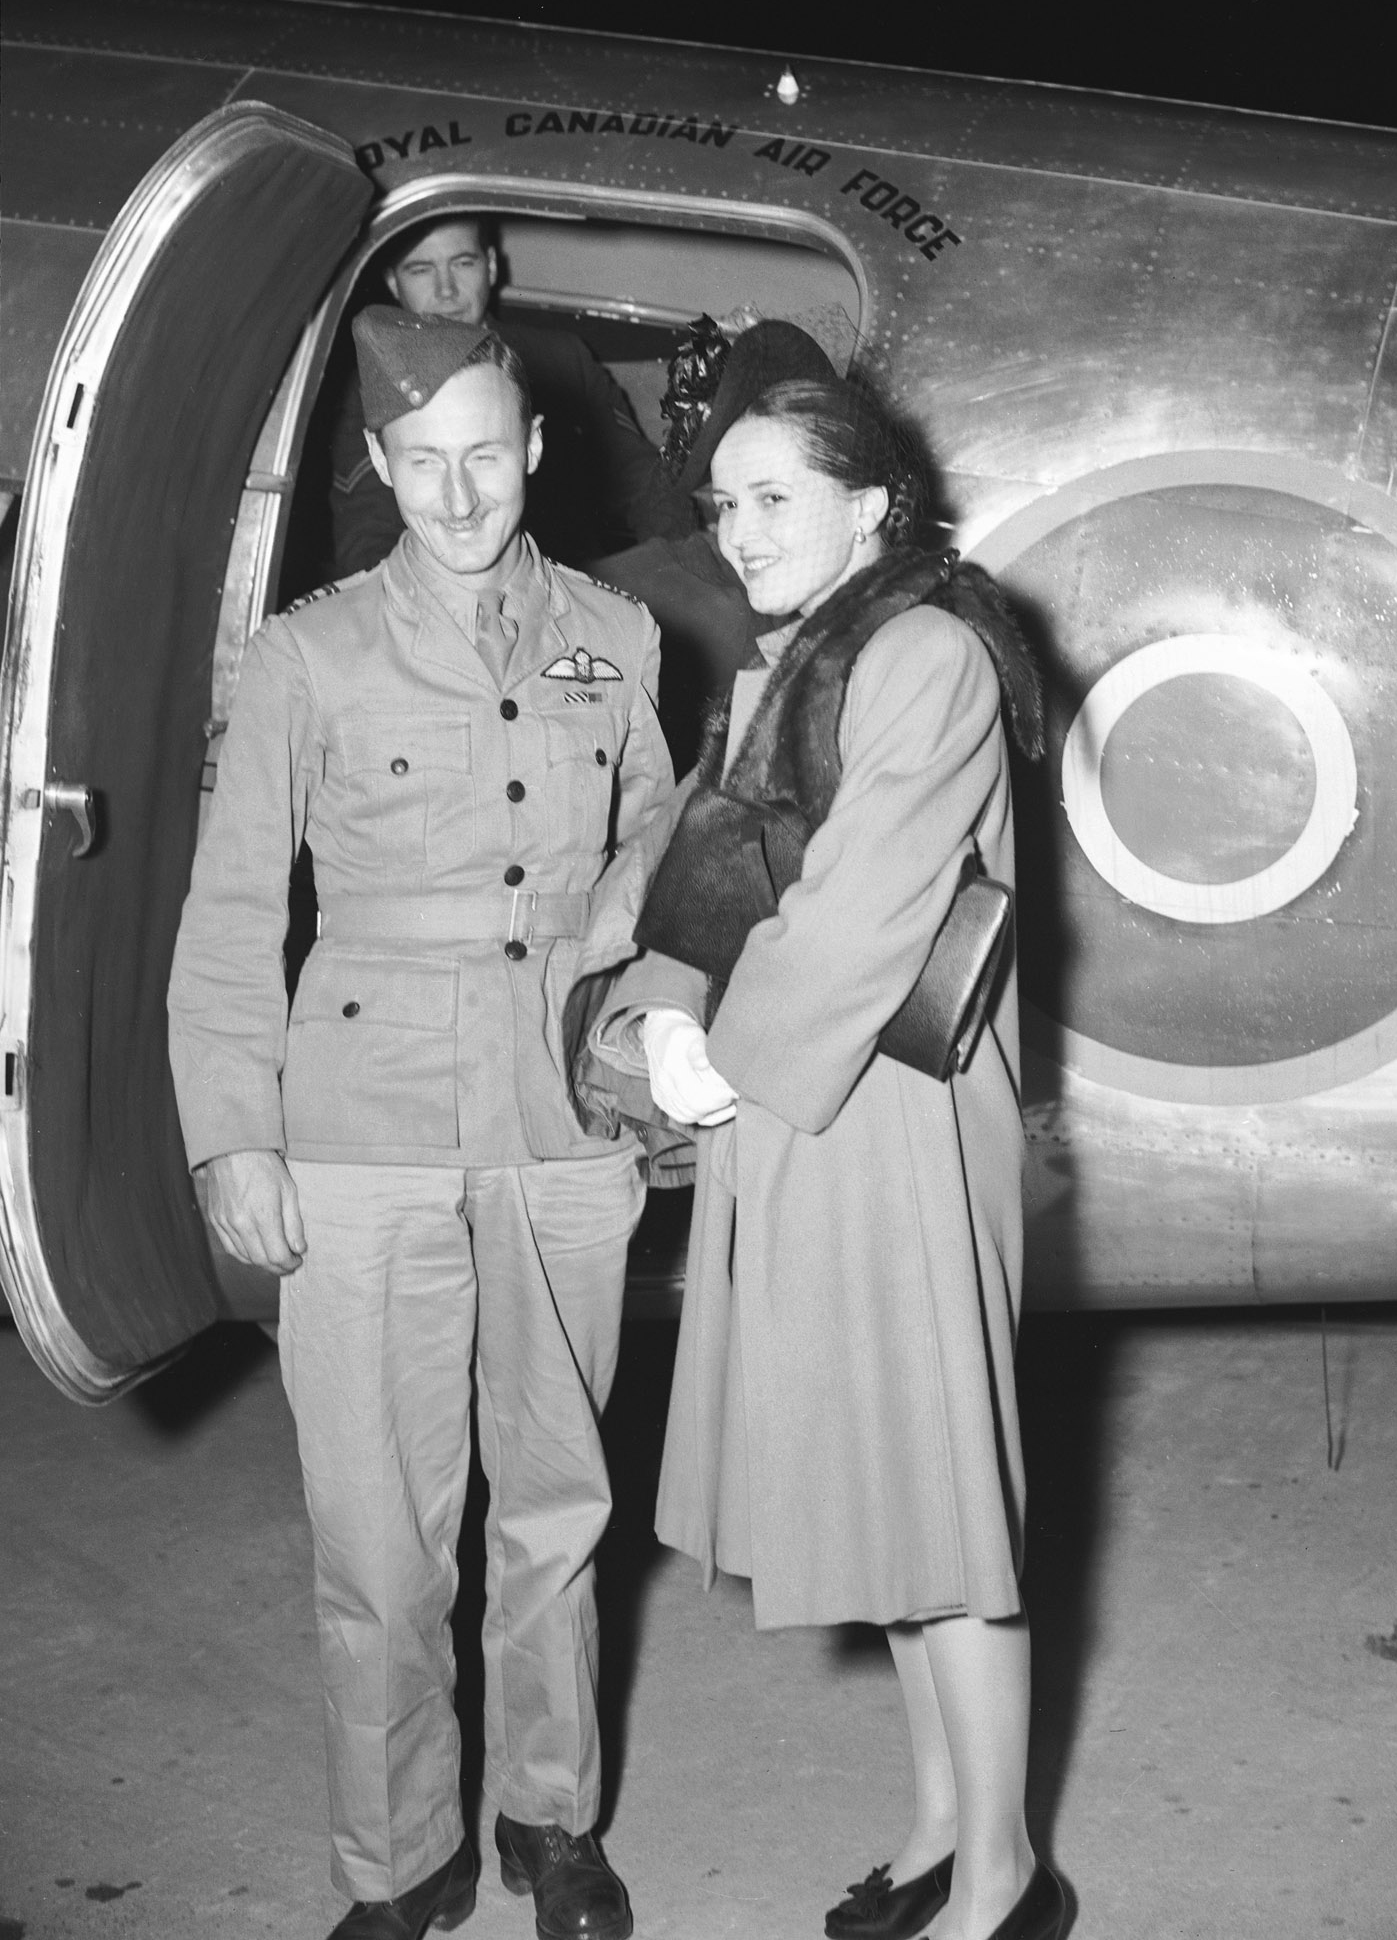 Le lieutenant-colonel d'aviation Len Birchall et madame Birchall à l'aéroport de Rockcliffe, près d'Ottawa, le 9 octobre 1945. PHOTO : Archives du MDN, PL-37202